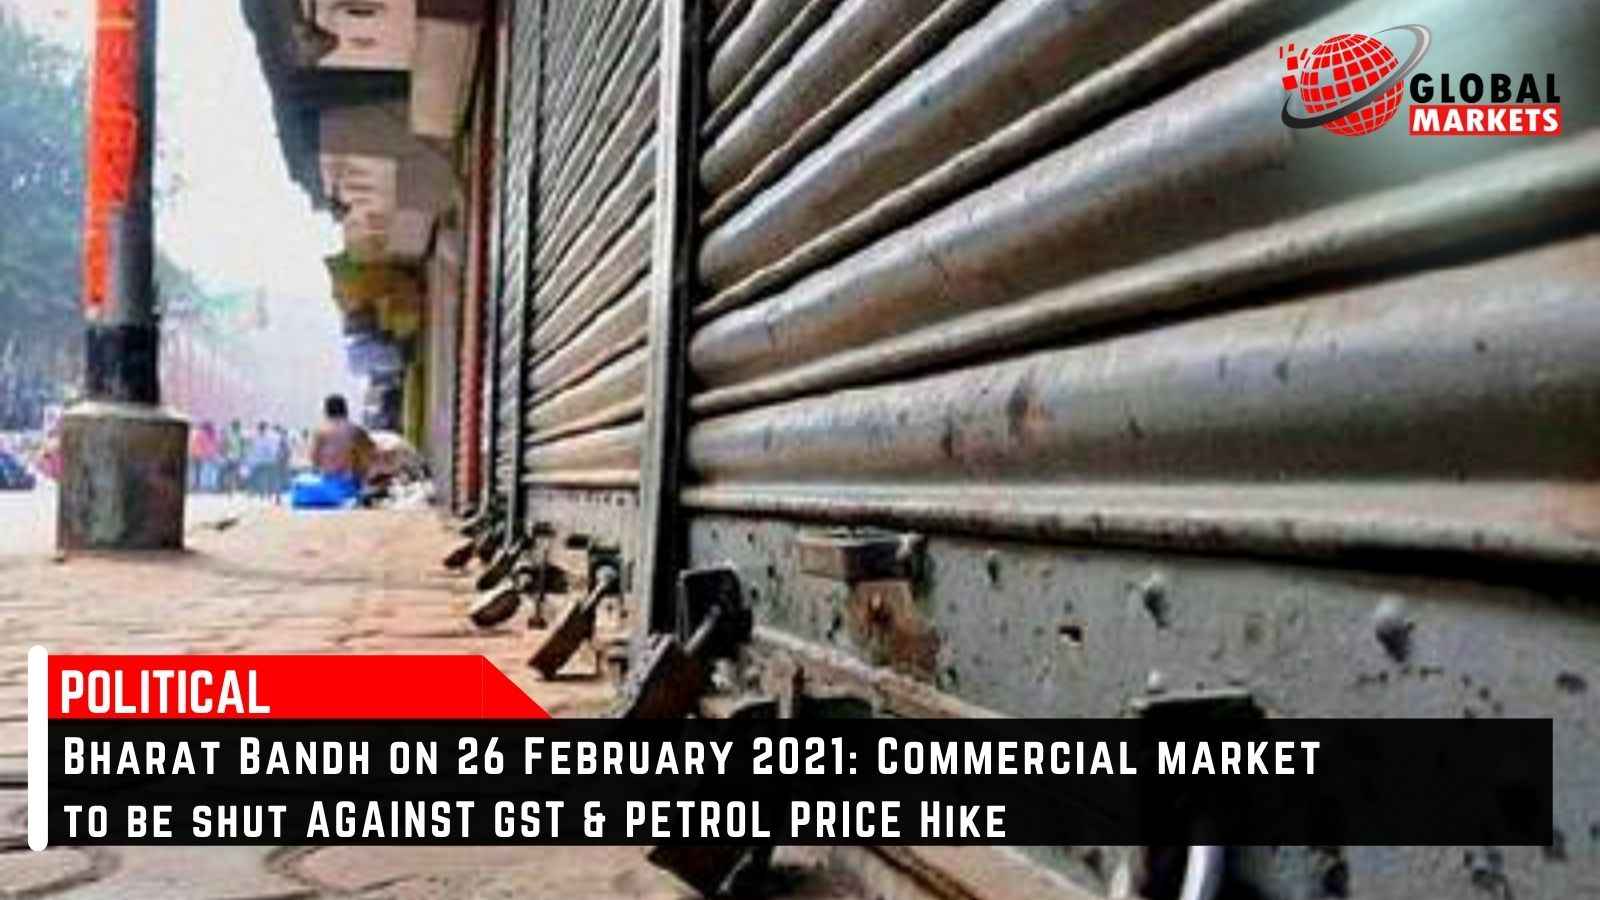 Bharat Bandh on 26 February 2021: Commercial market to be shut